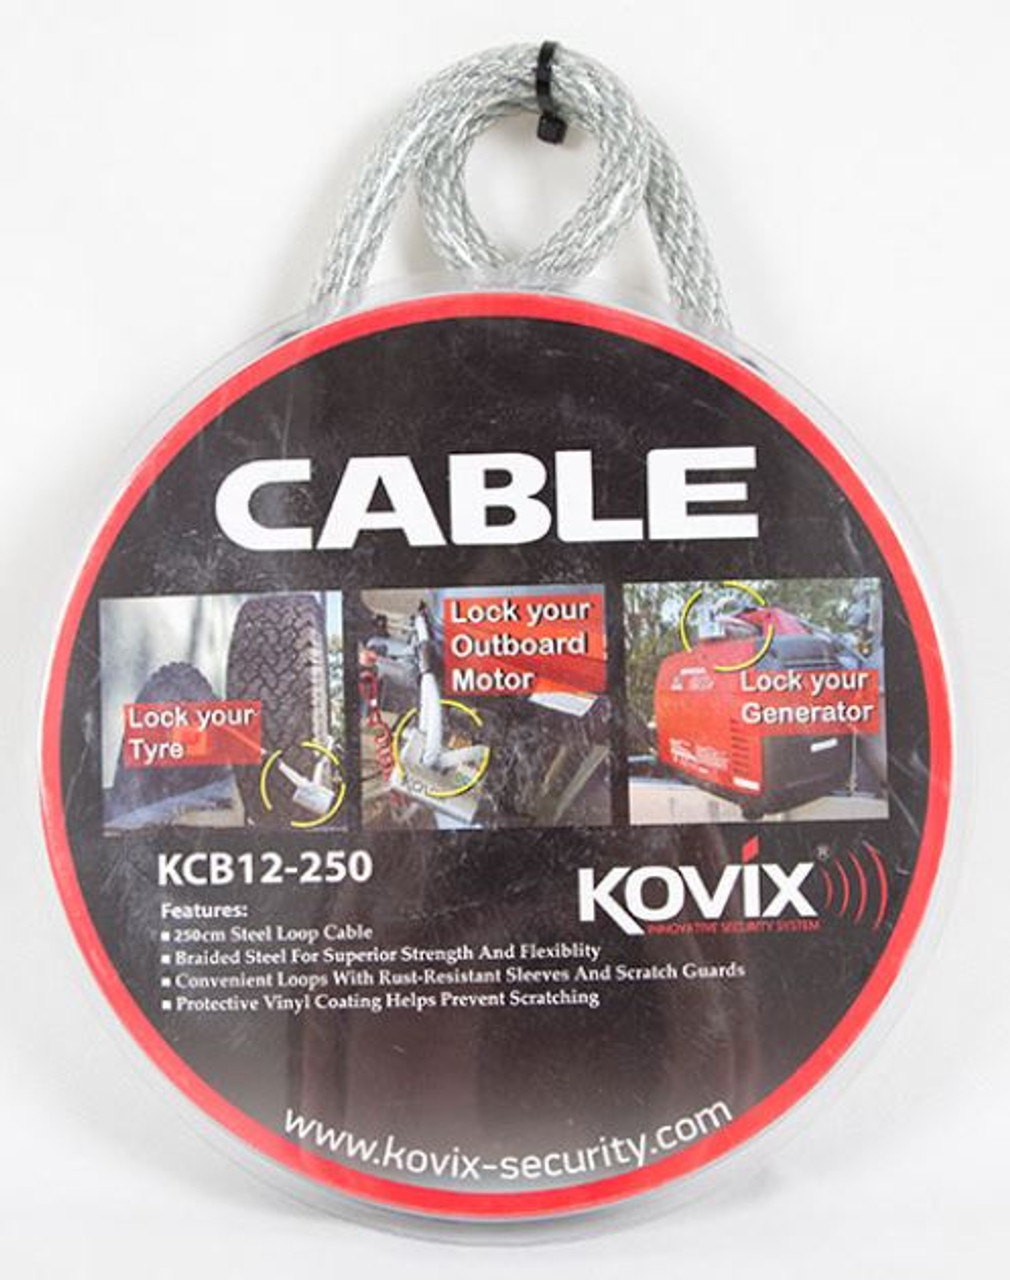 Kovix Locks are best used with Kovix Security Cable. *Cable not included.